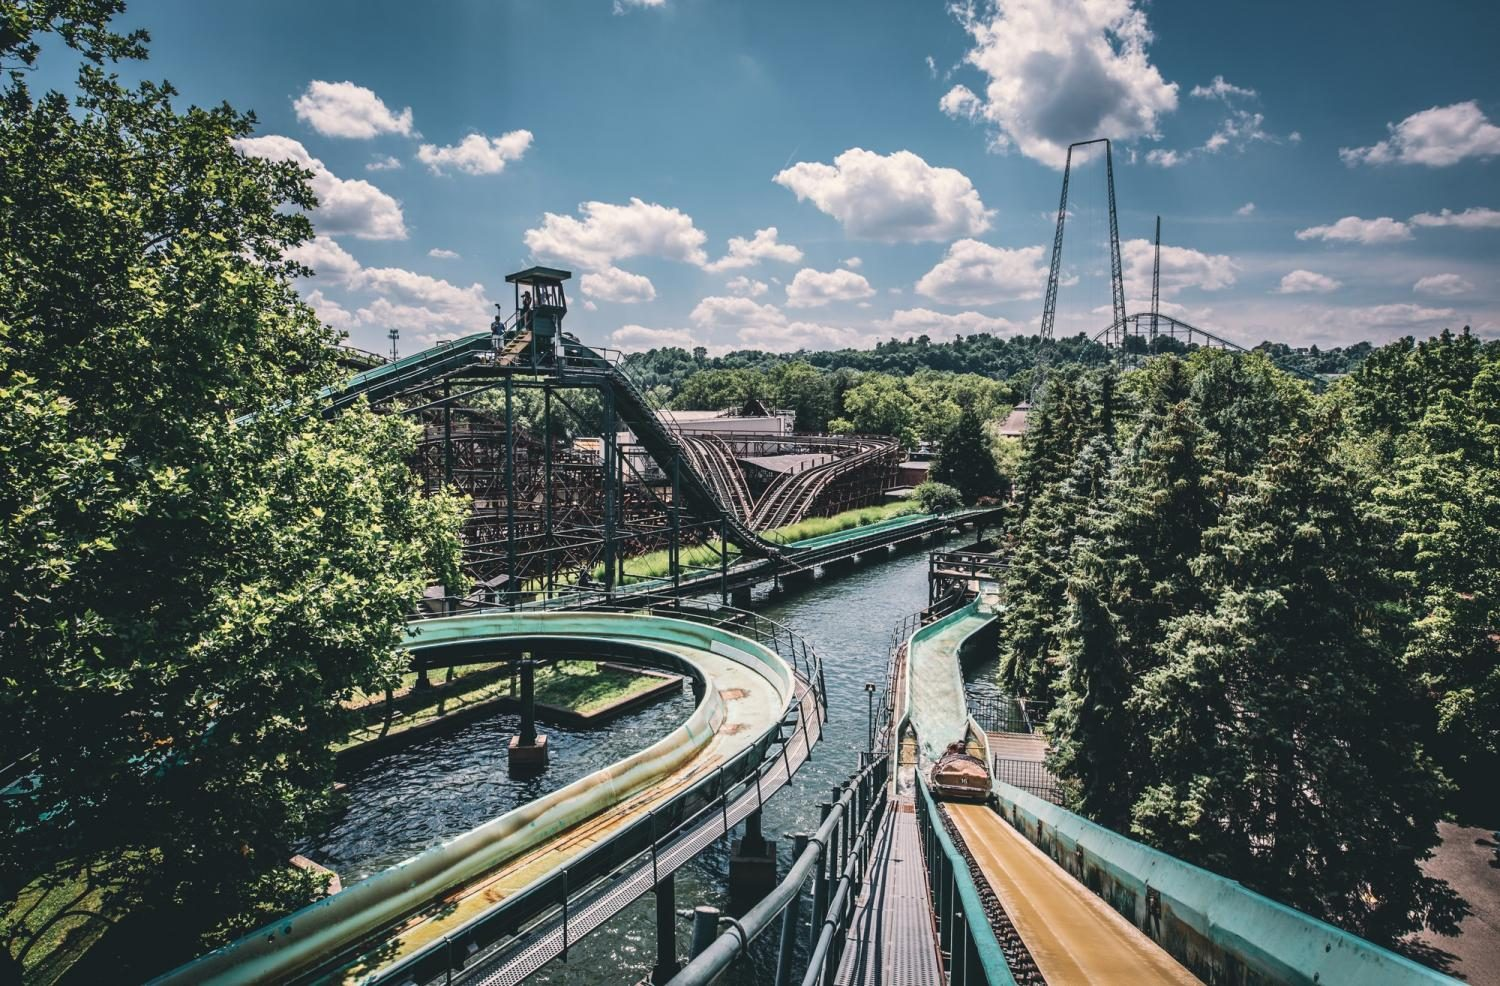 Processed+with+VSCO+with+e5+preset+Photo+credit%3A+Kennywood+Park